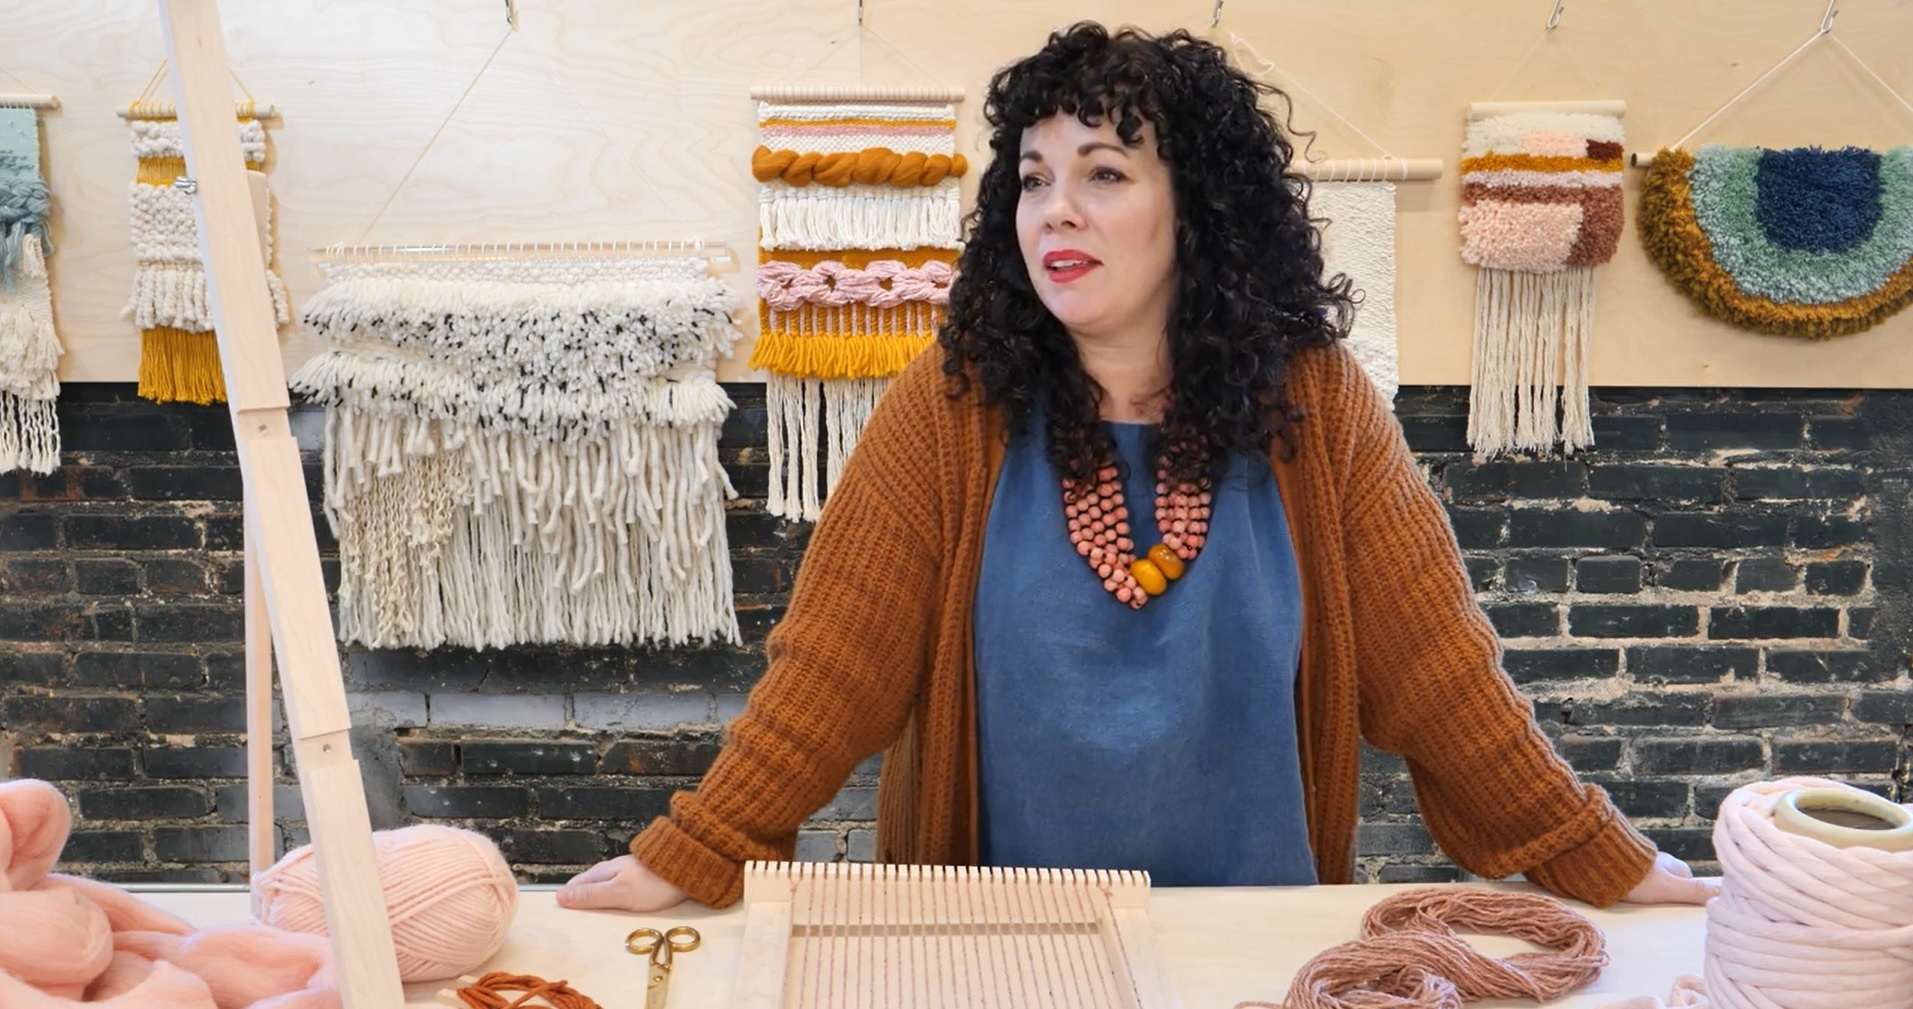 A figure with dark hair stands among fiber art and loom weaving materials